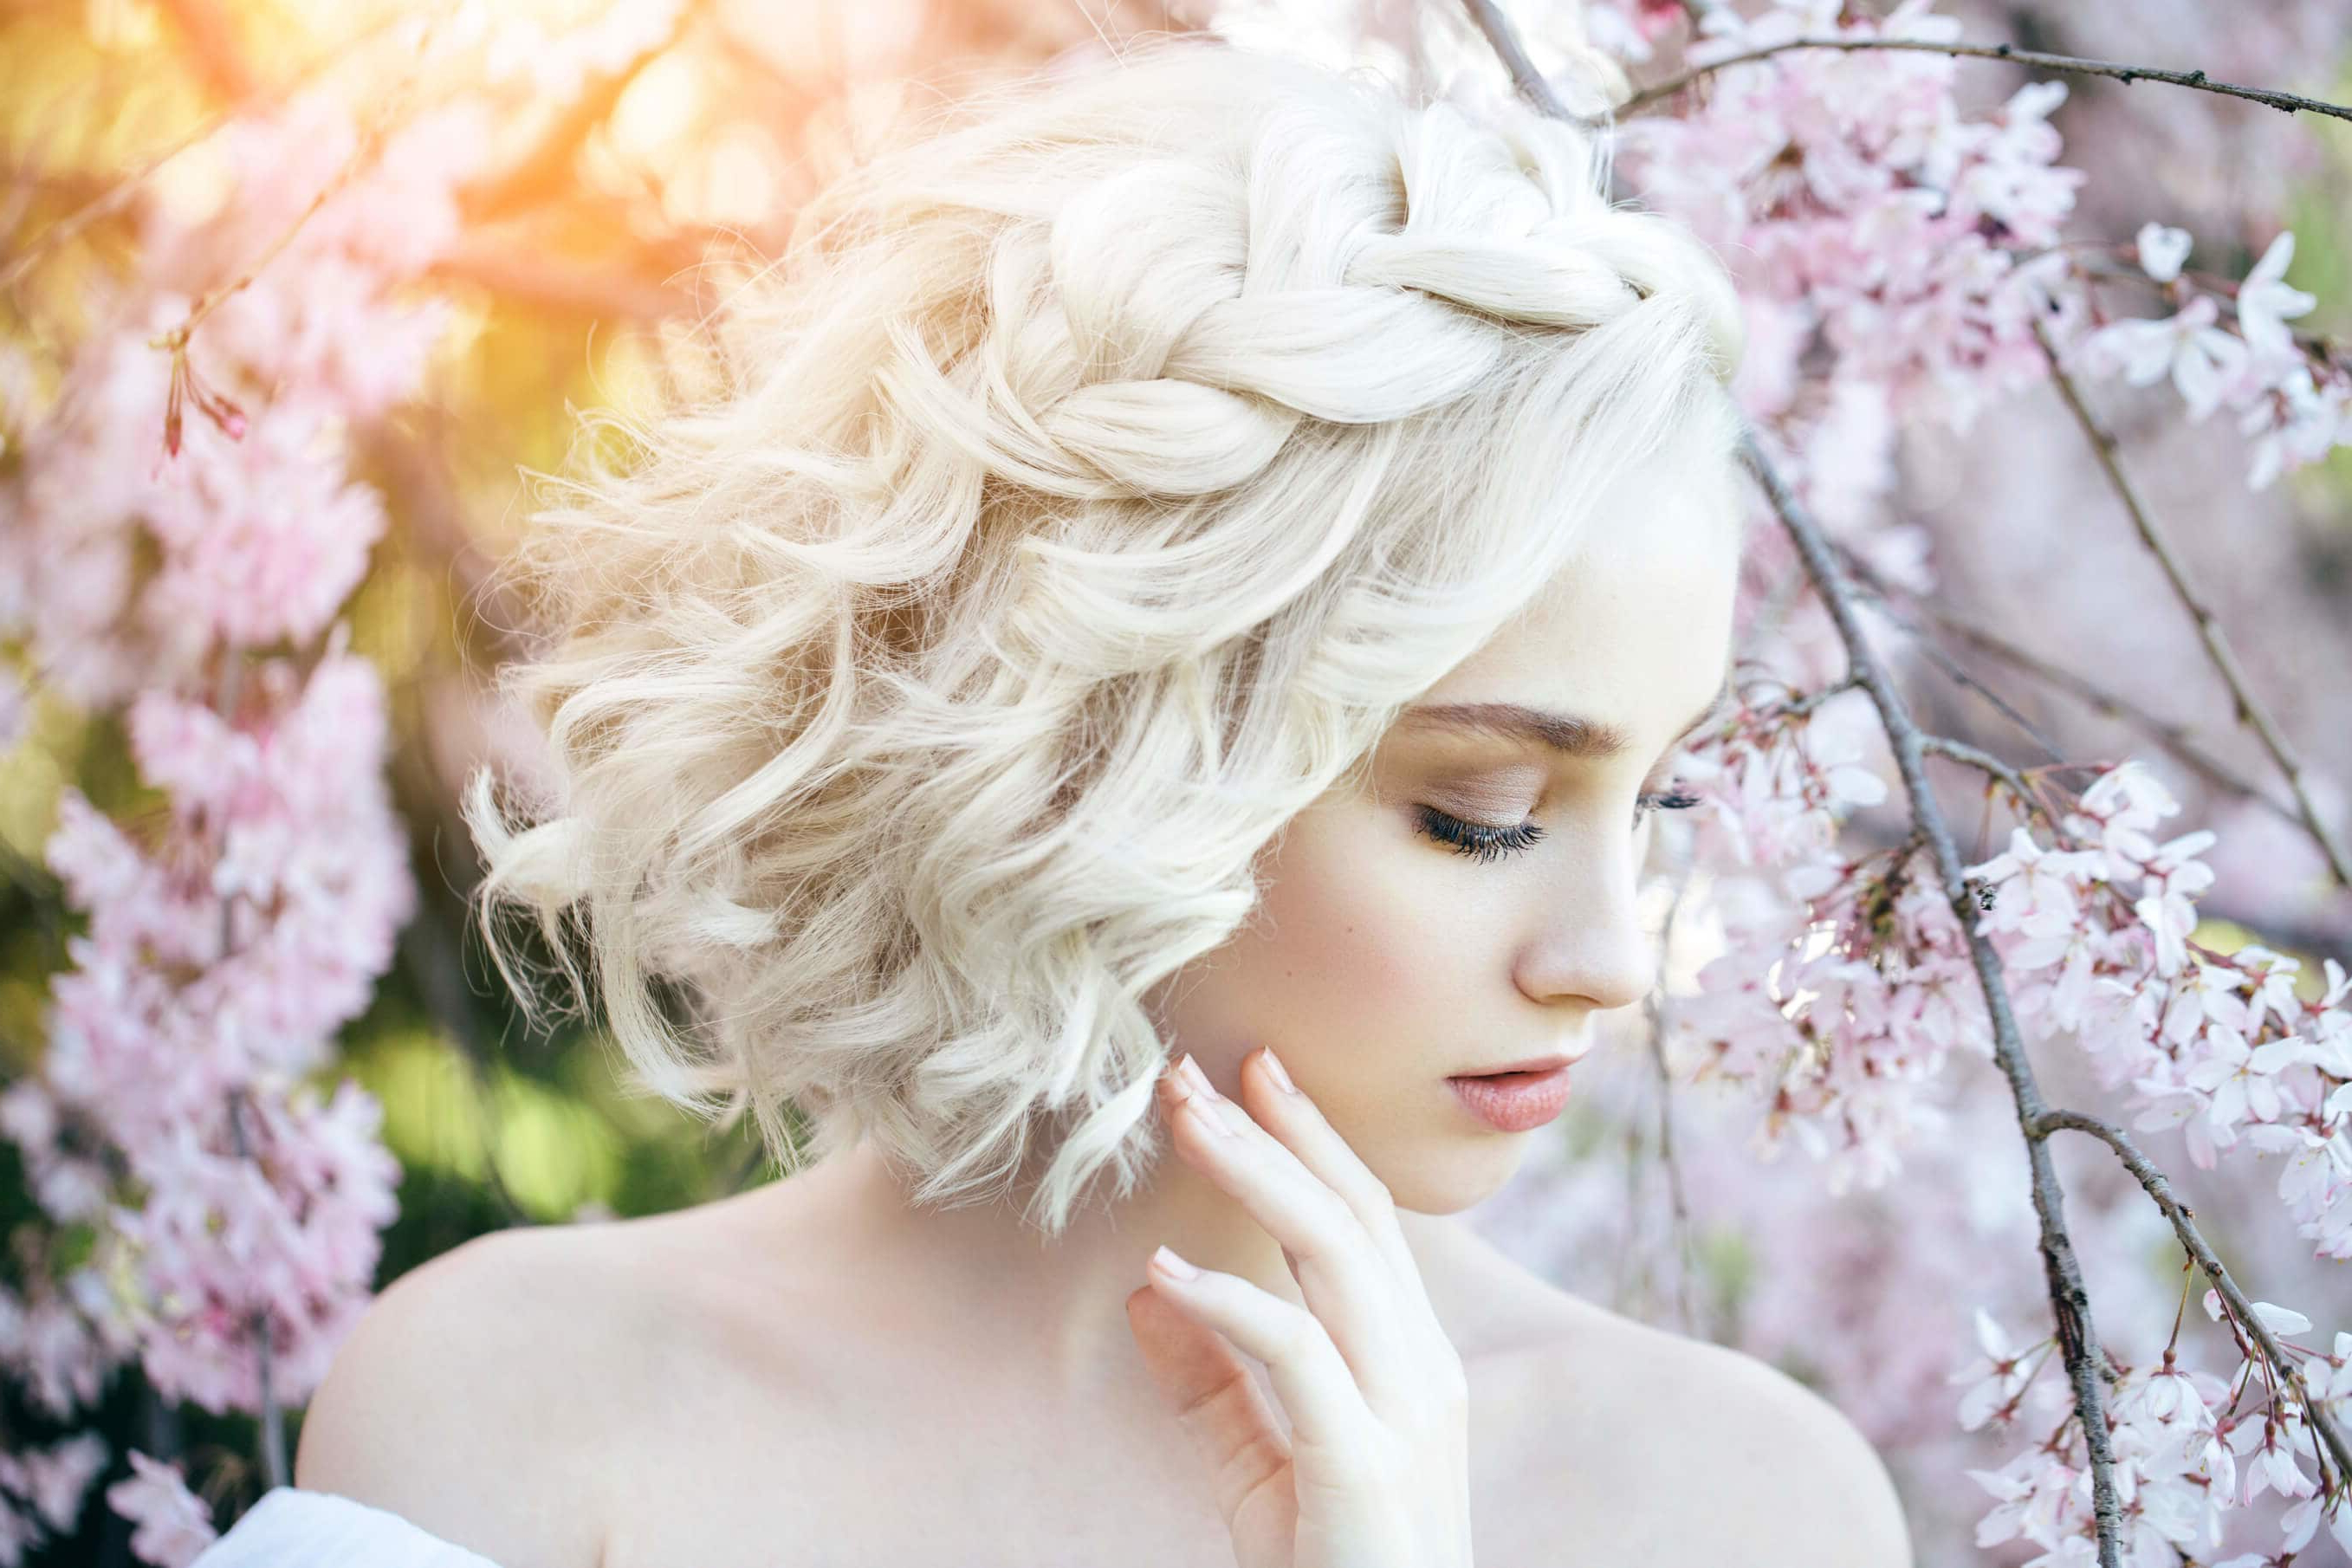 14 Chic Wedding Hairstyles For Short Hair Inside Hairstyles For Short Hair Wedding (View 11 of 25)